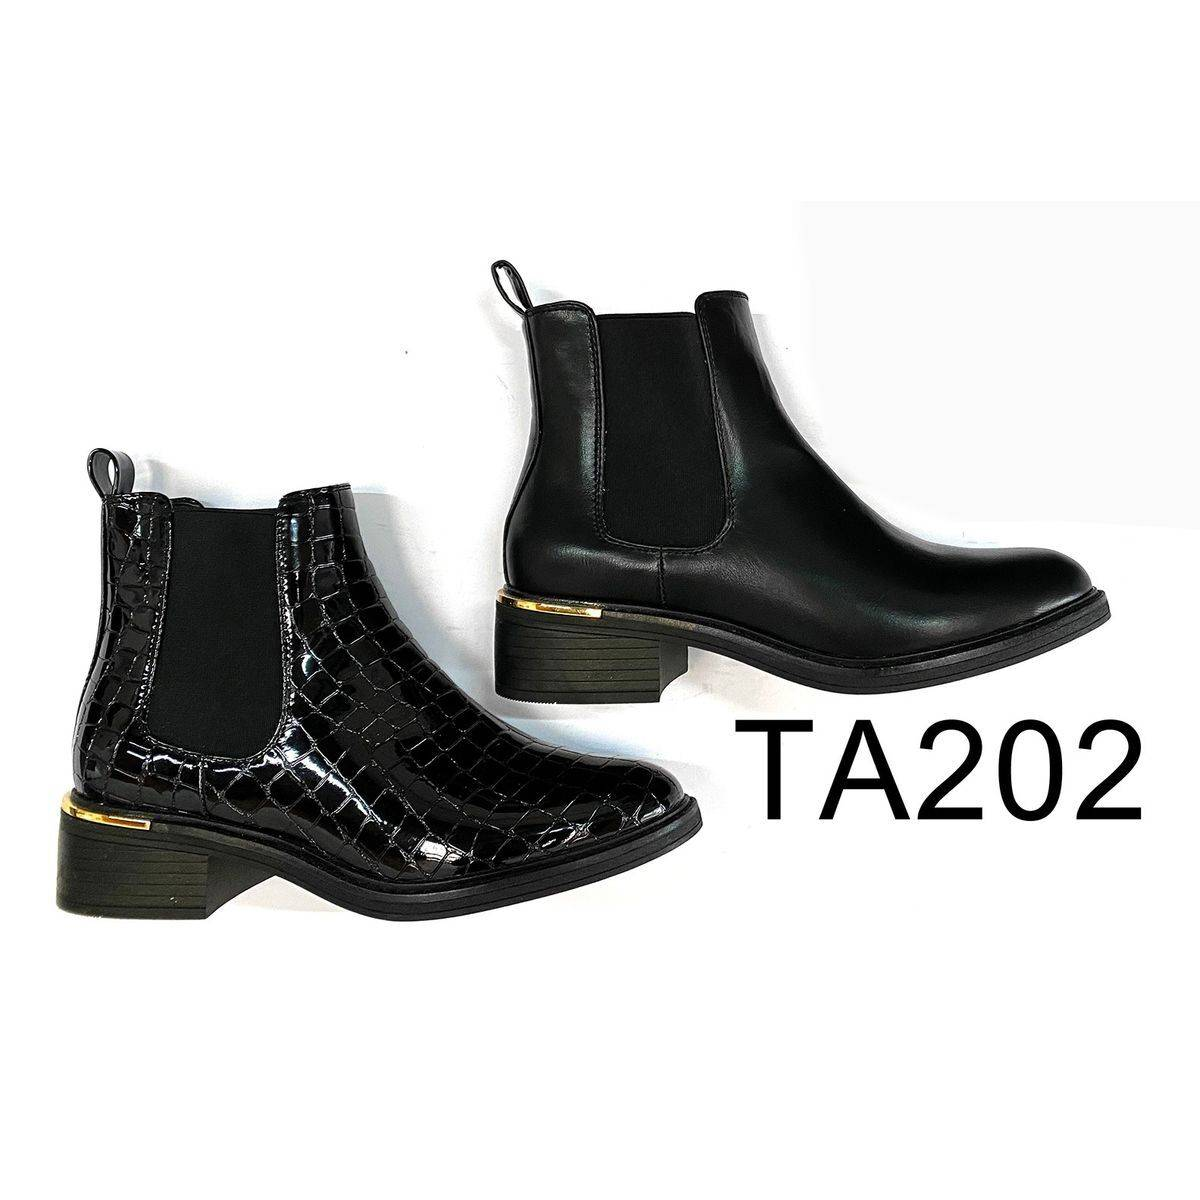 Ankle boot with Gold Trim Heel Moyee